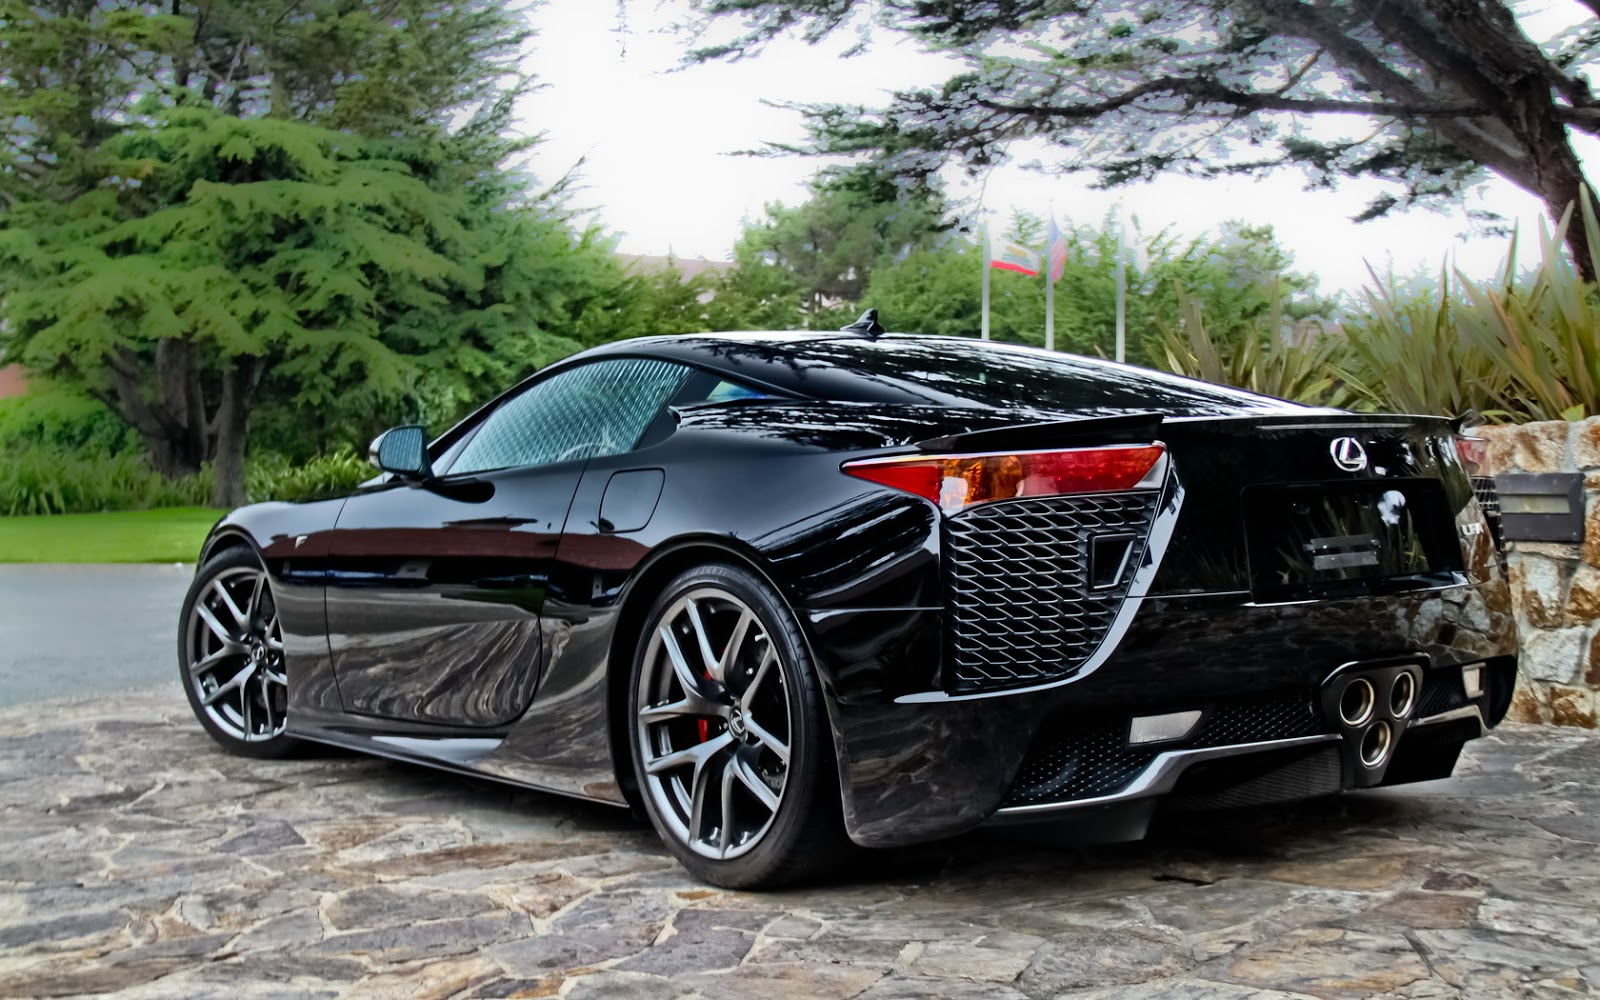 Black Lexus LFA Supercar Wallpaper   HD 1600x1000